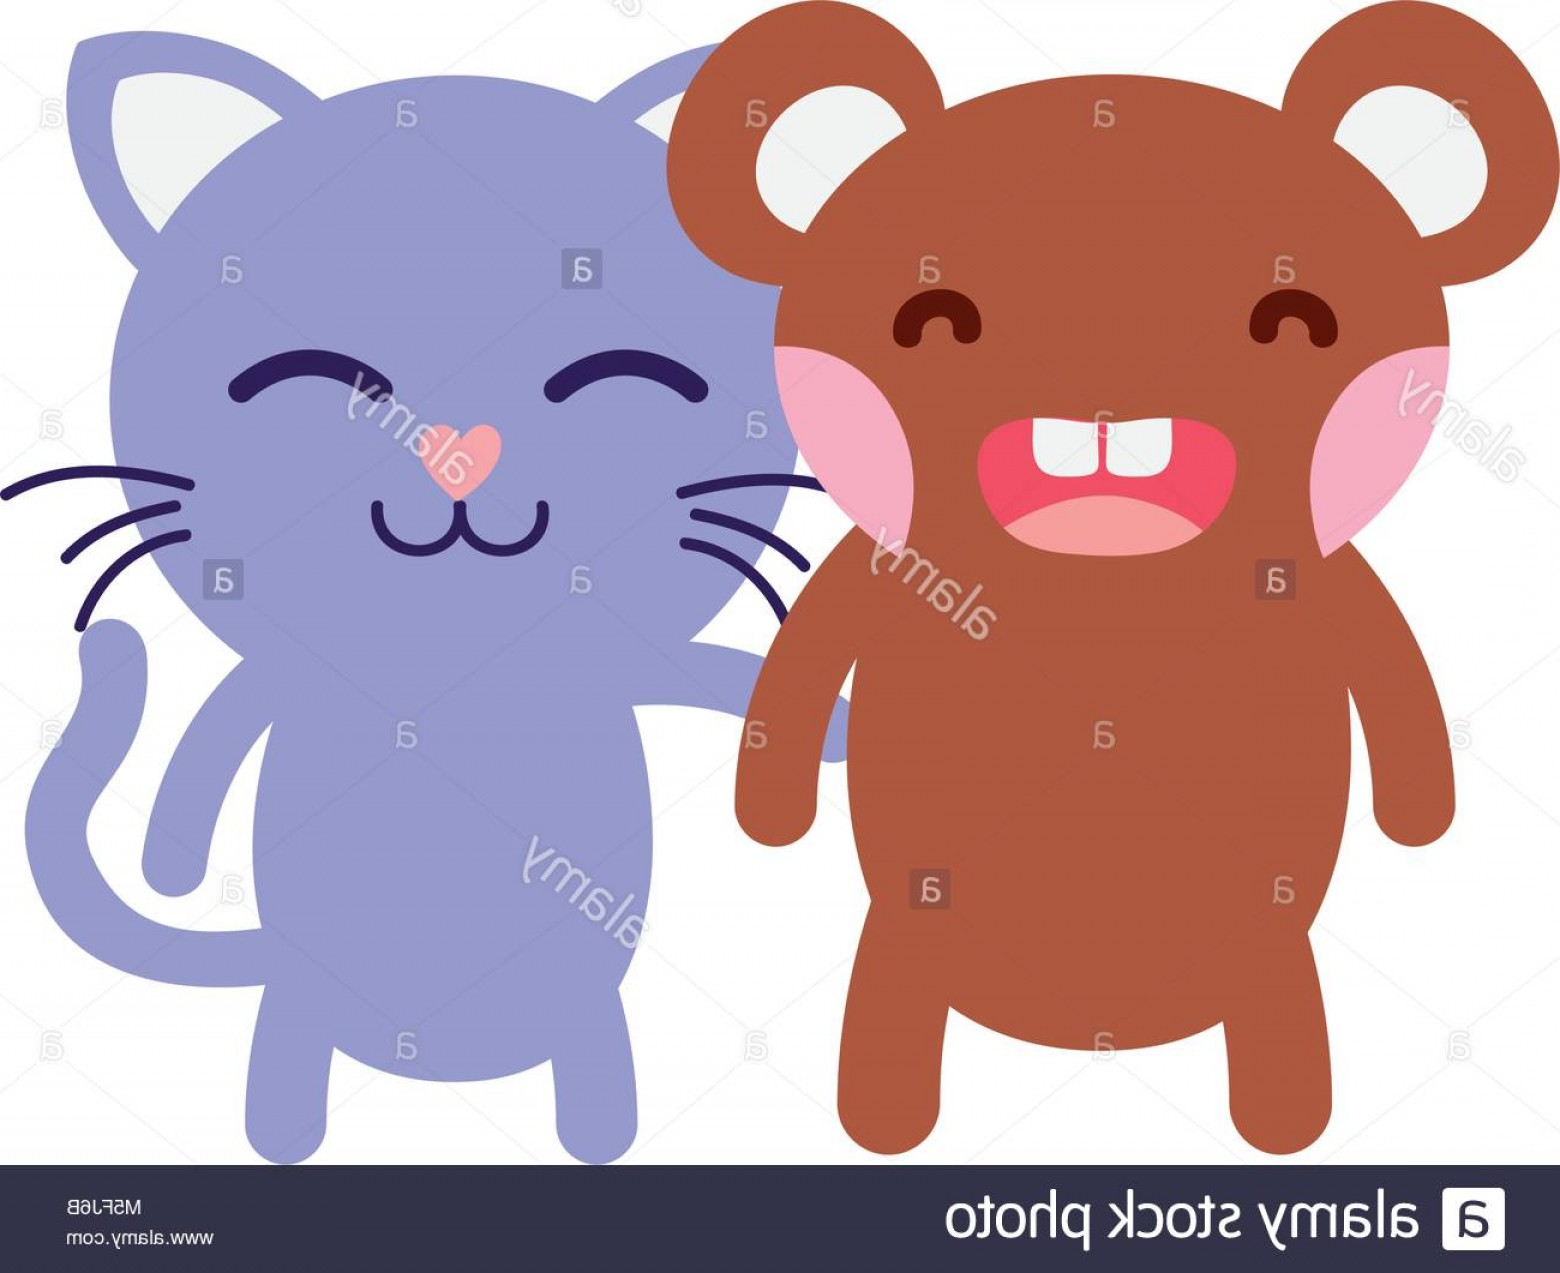 Vector Cats 3: Stock Photo Colorful Bear And Cat Cute Animals Friends Vector Illustration